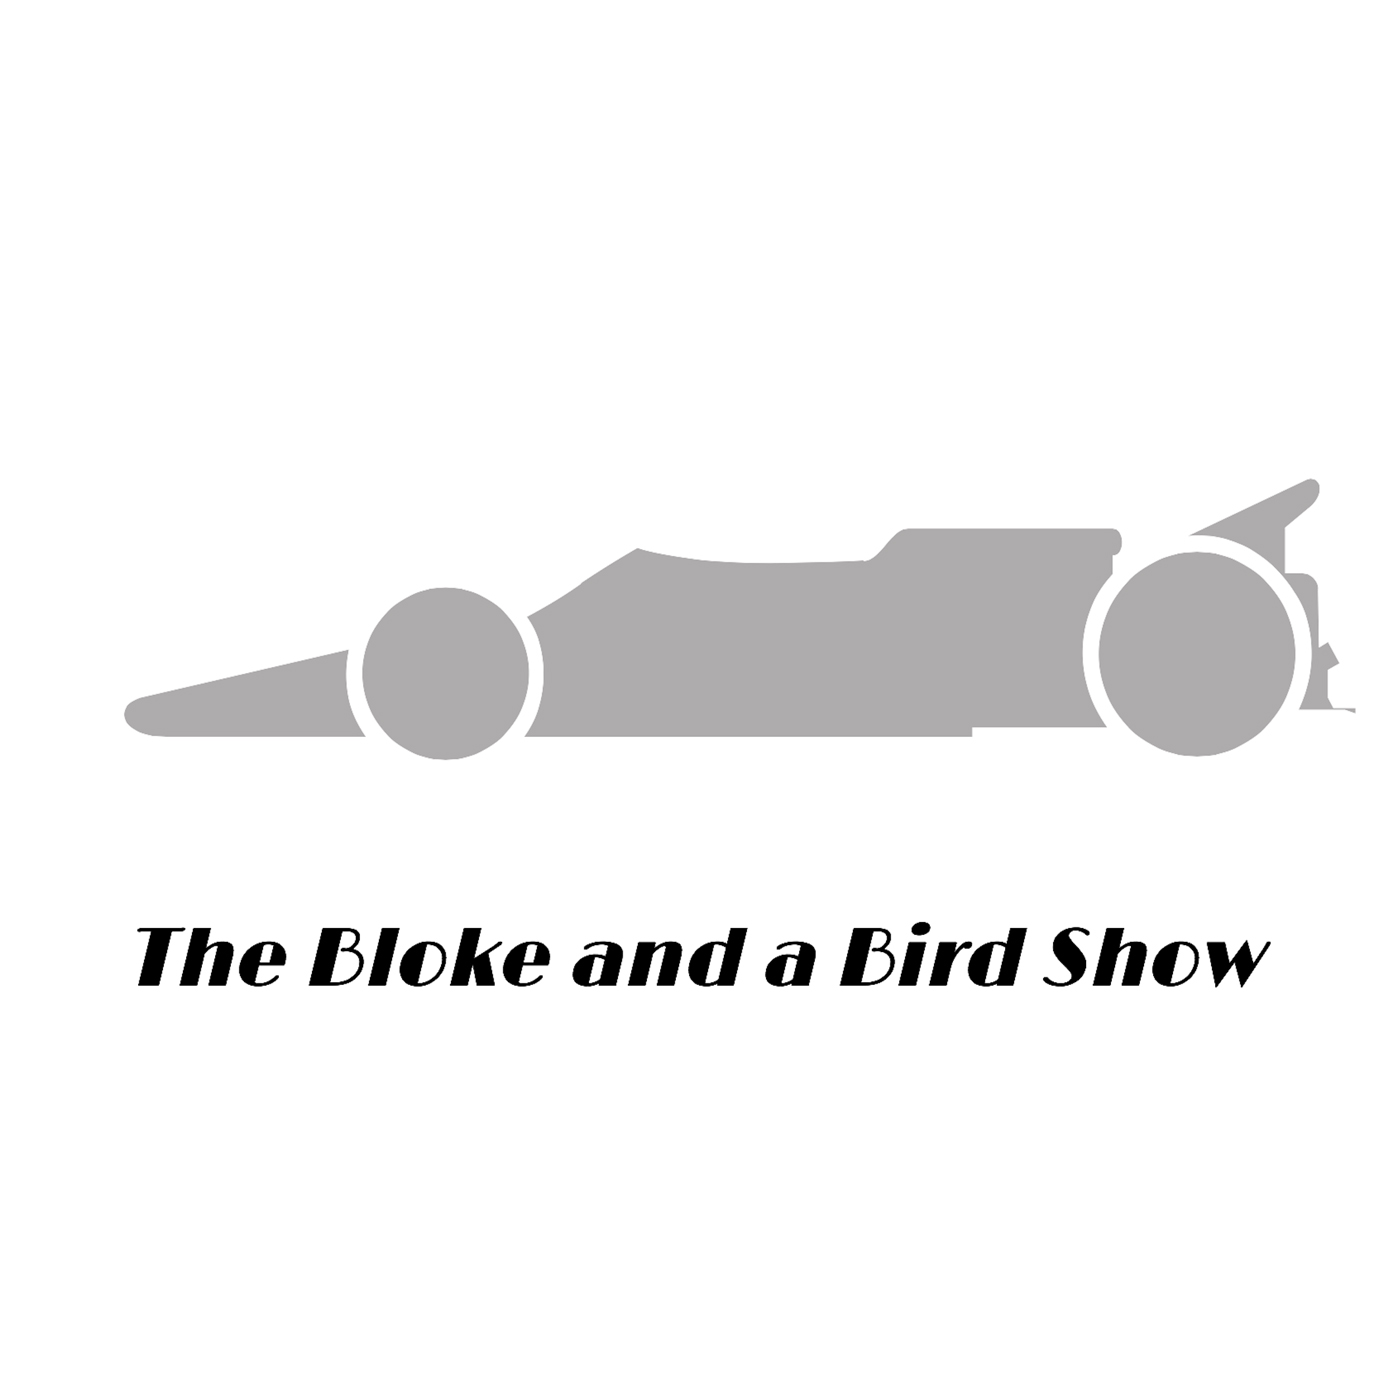 Podcast - Bloke & A Bird